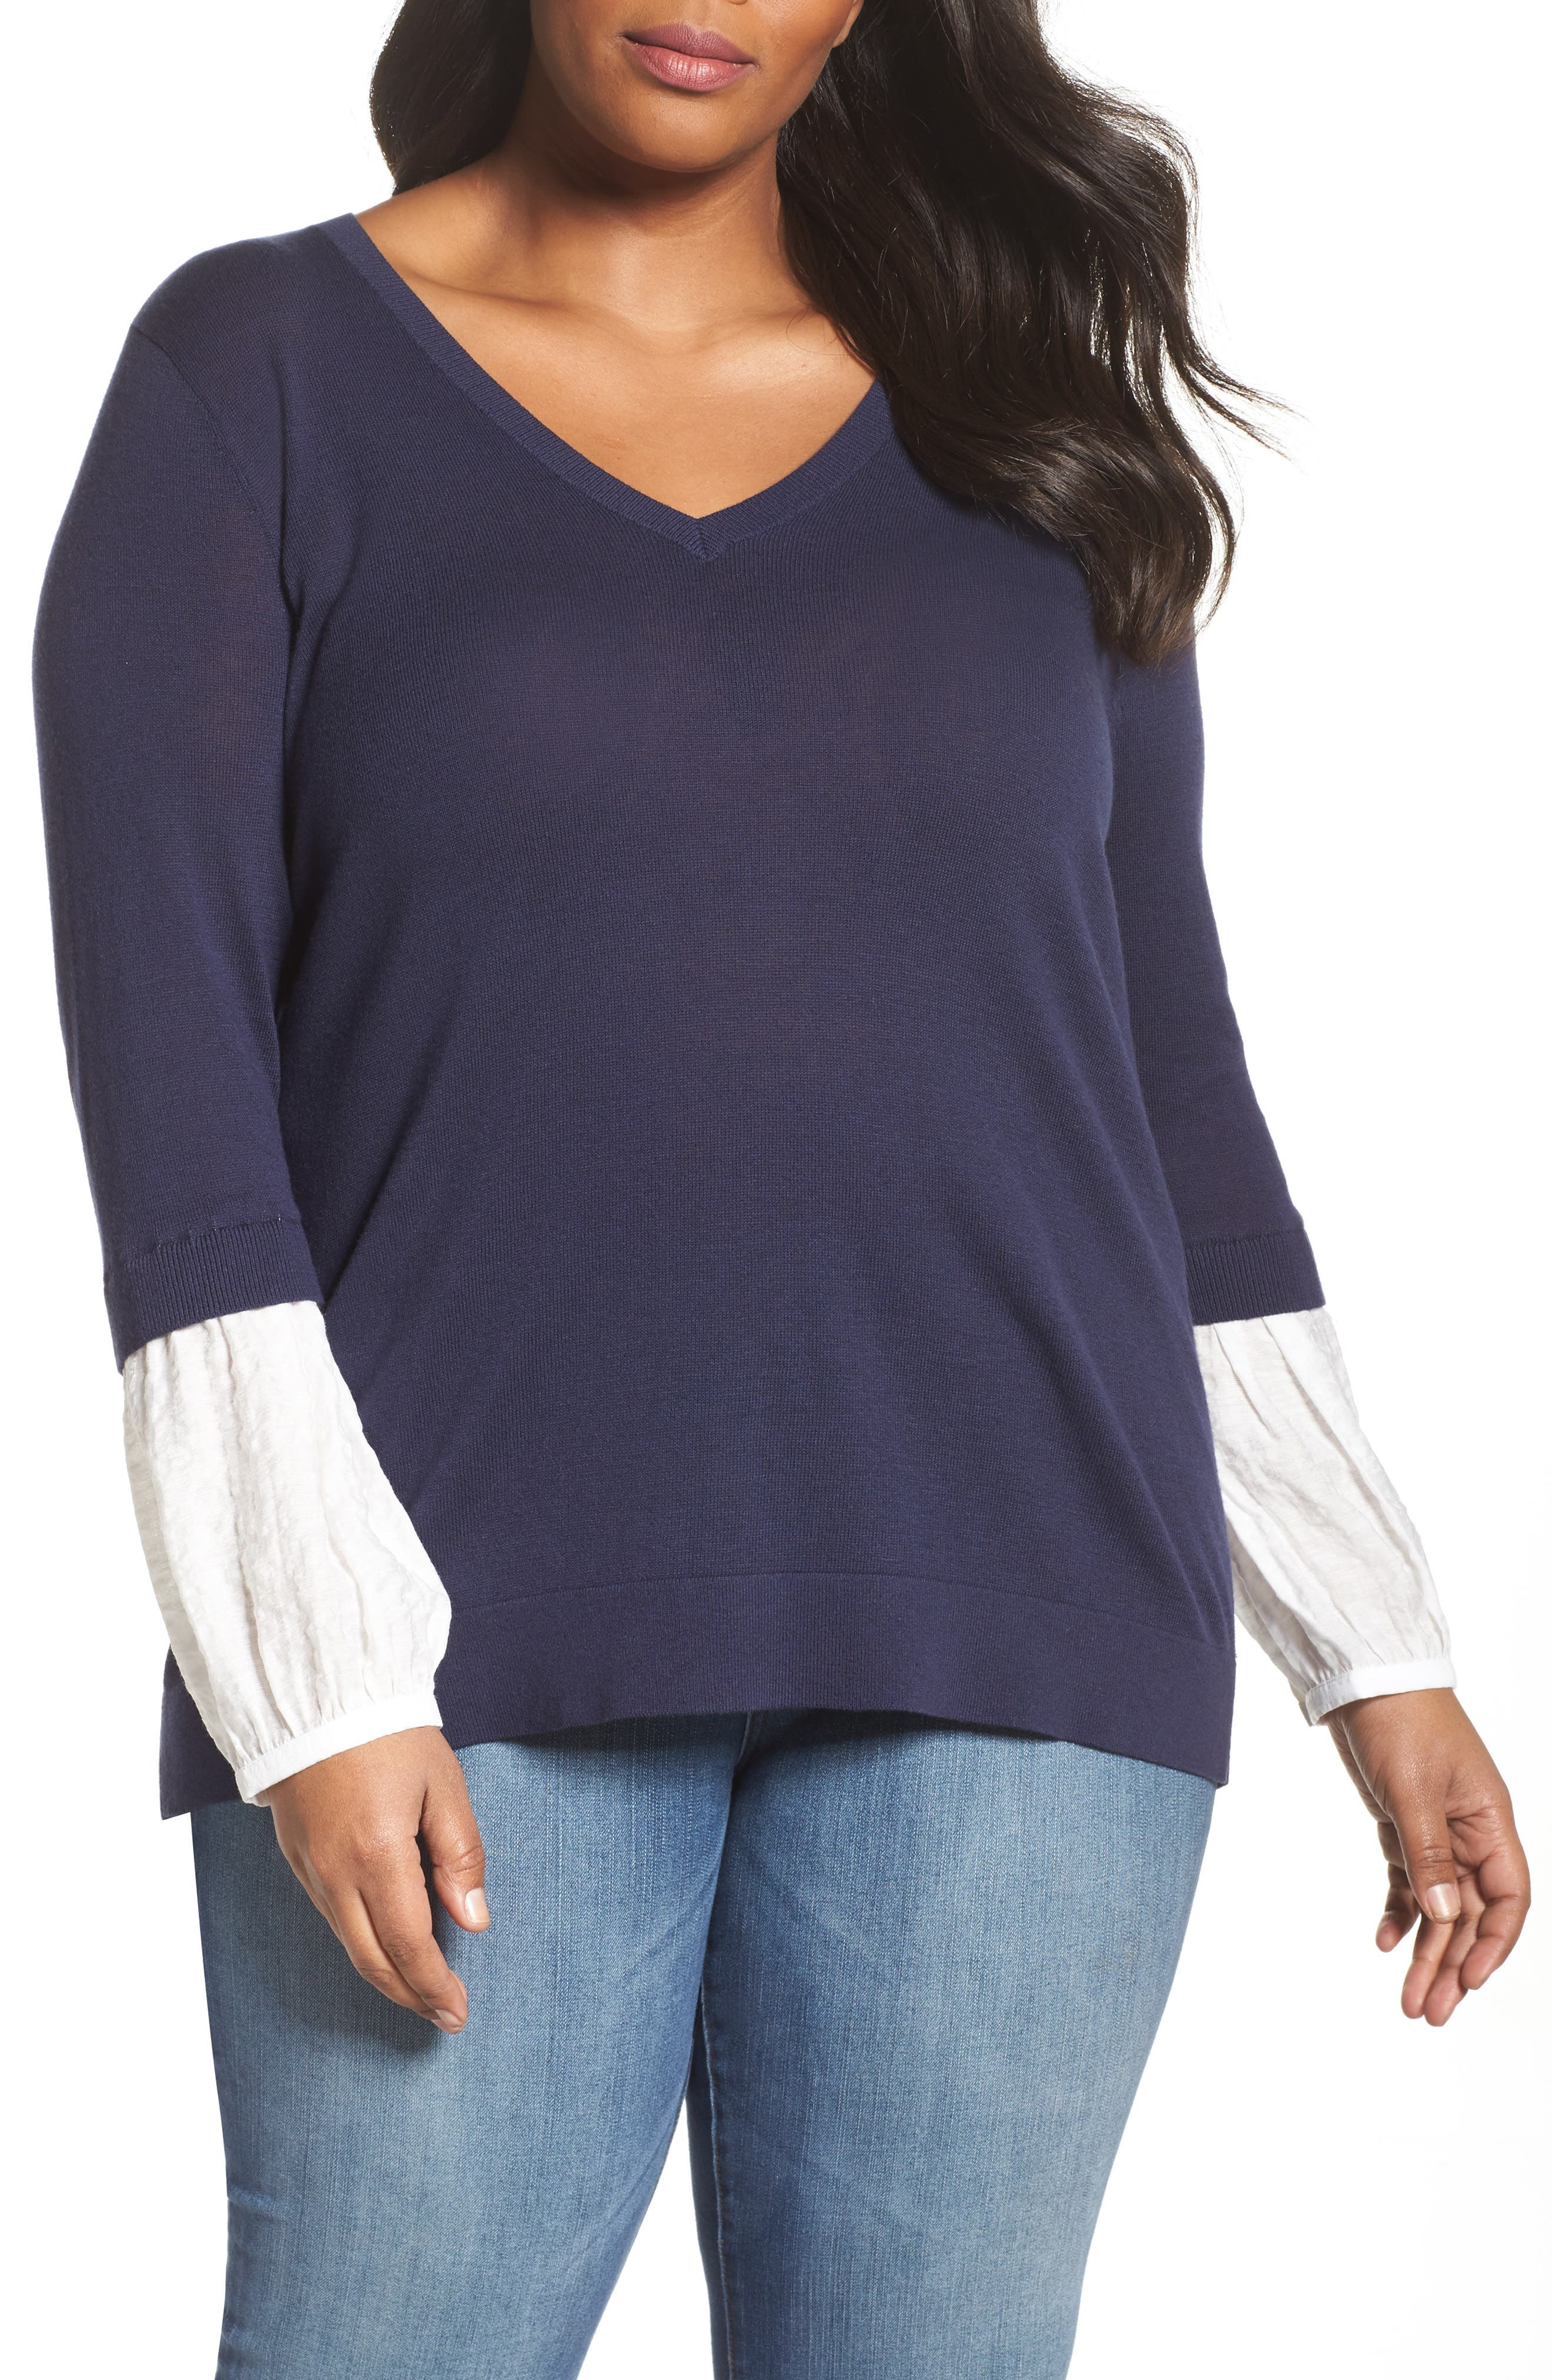 Alternate Image 1 Selected - Sejour Mix Media Sweater (Plus Size)